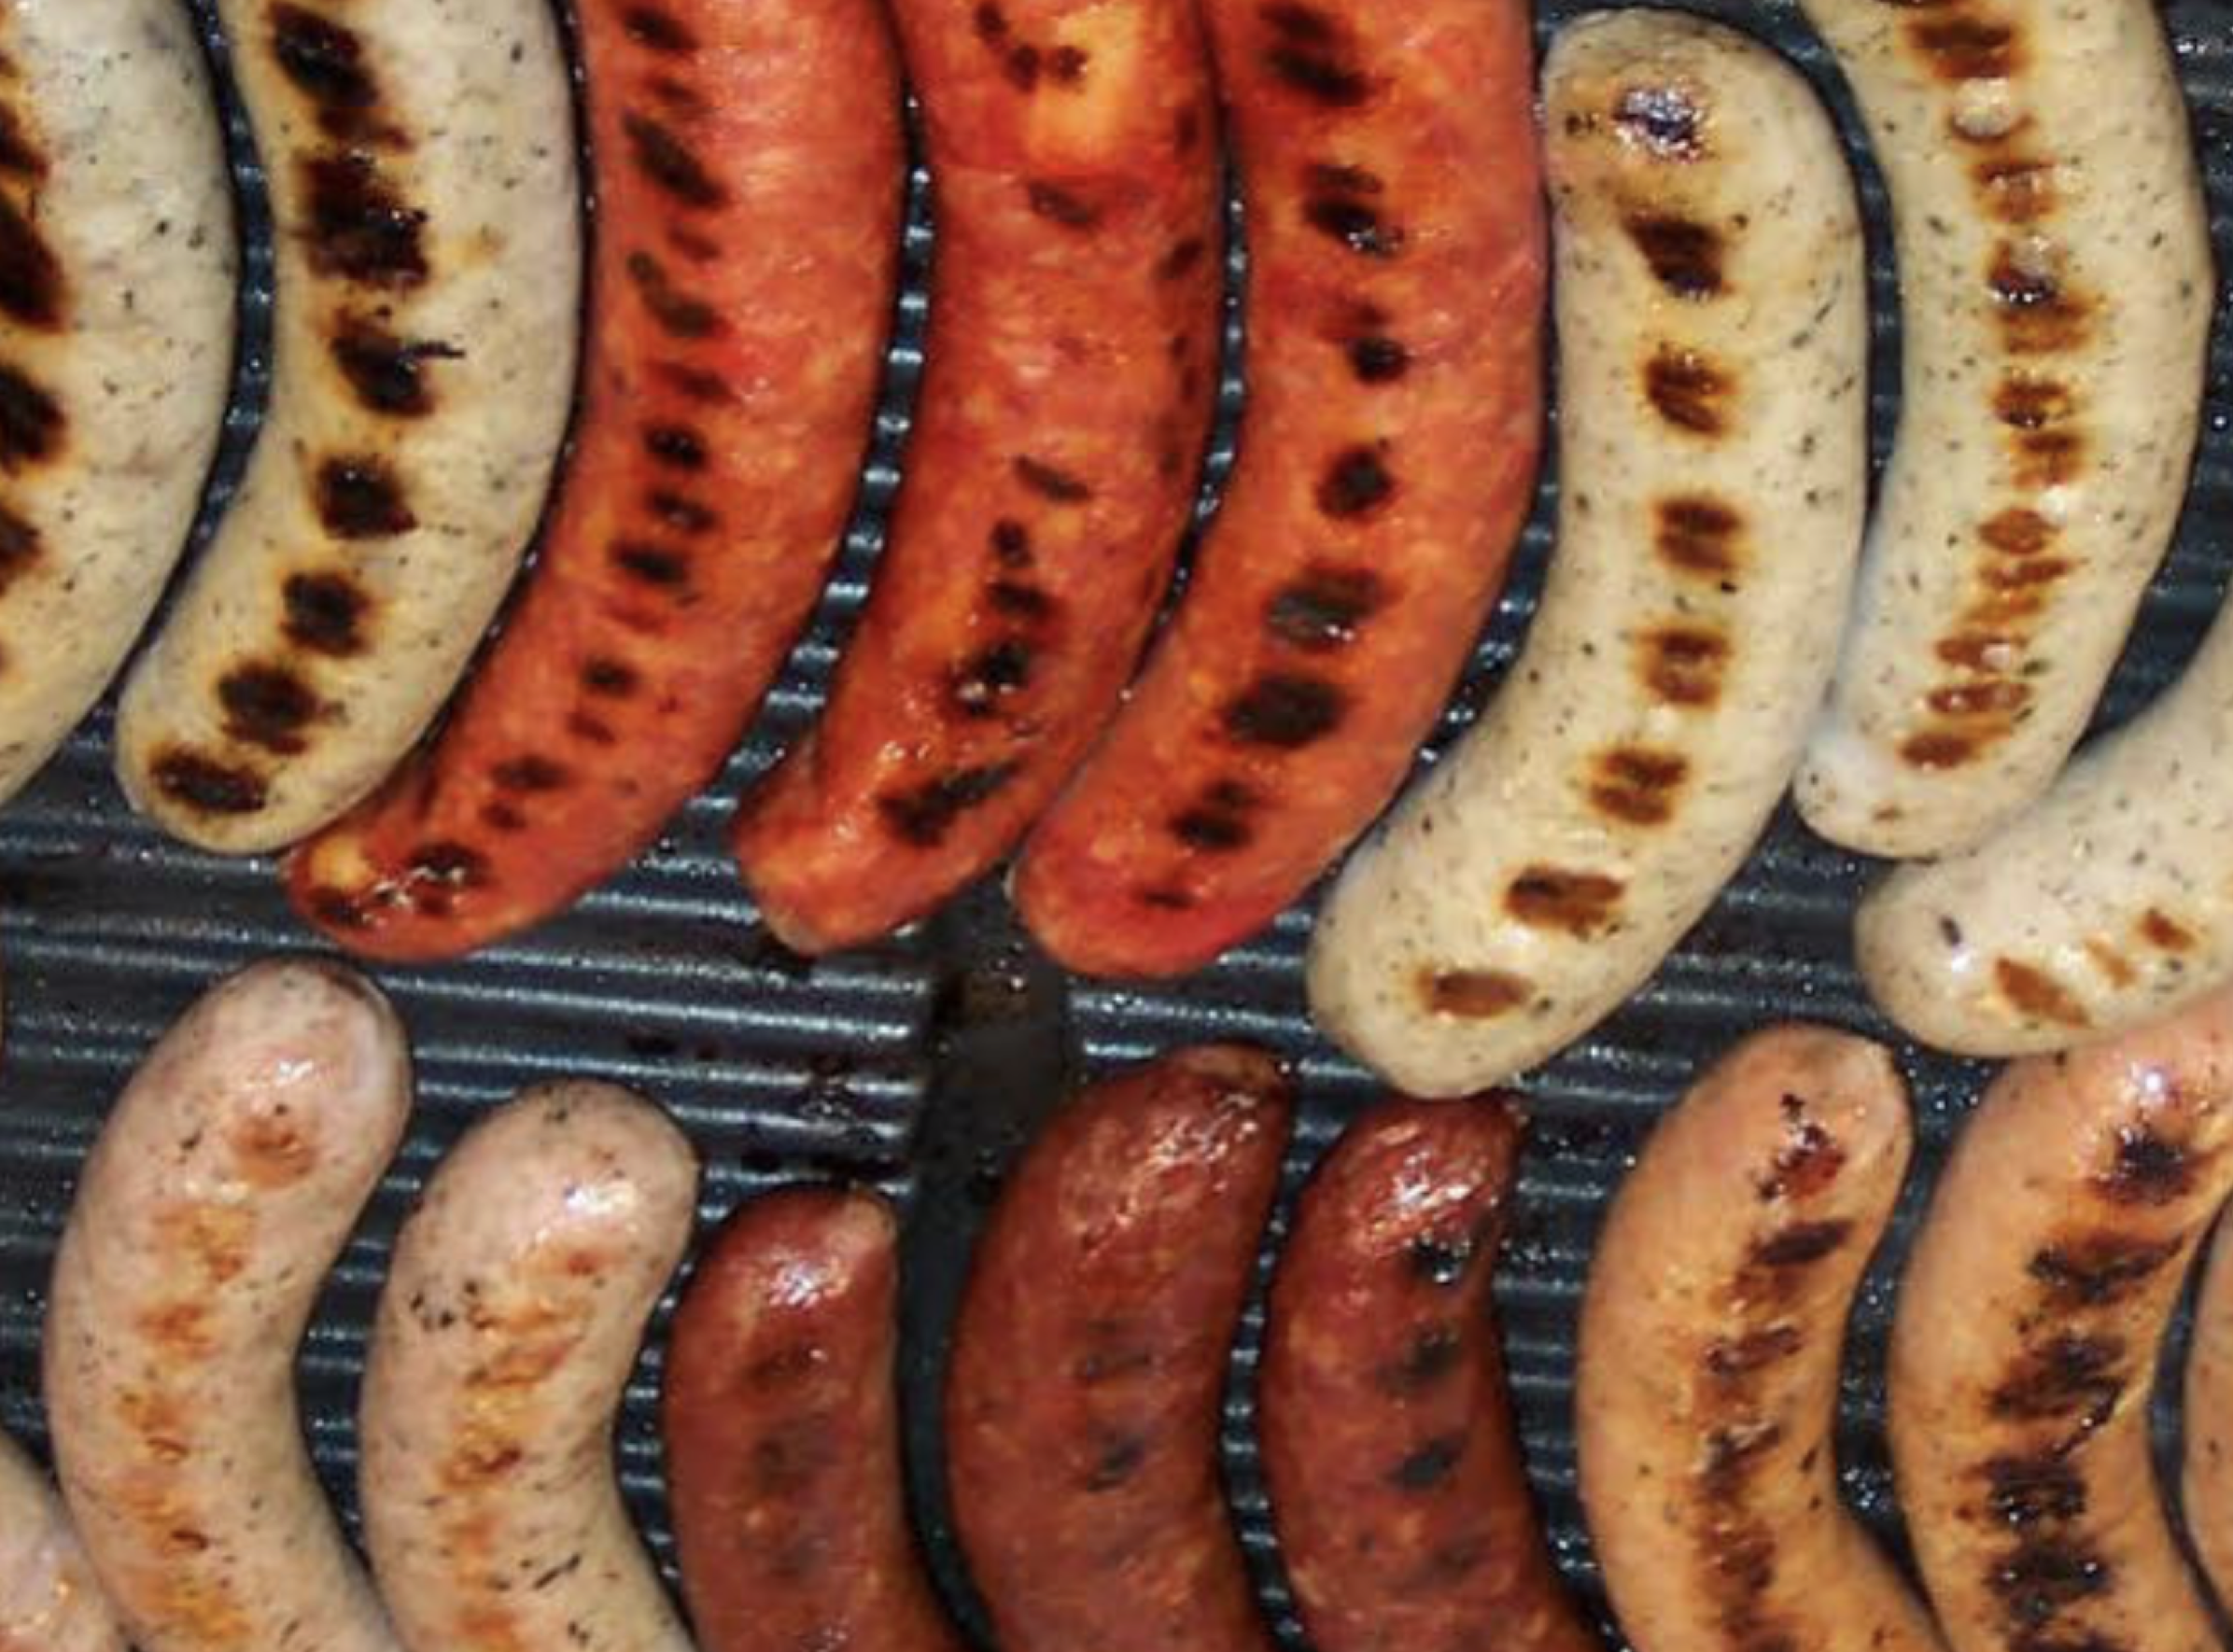 Best Wurst connects cultures – The Philippine Business and News